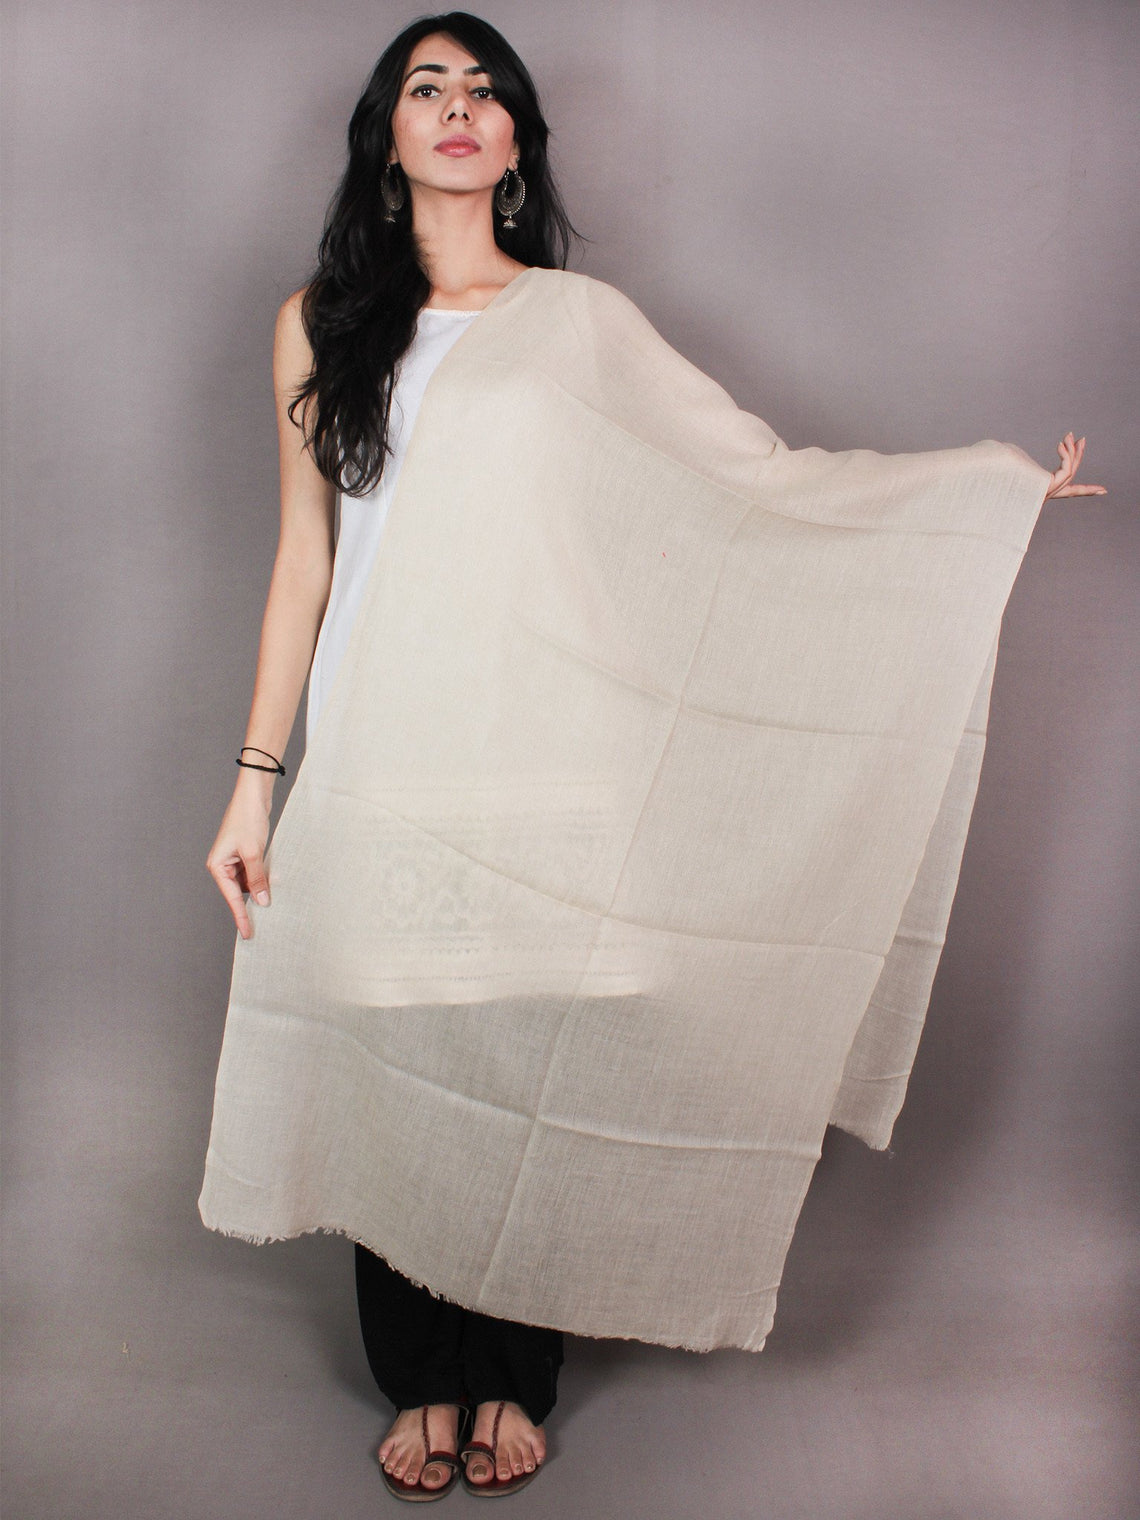 Ivory Pure Pashmina Handloom Stole from Kashmir - S6317094